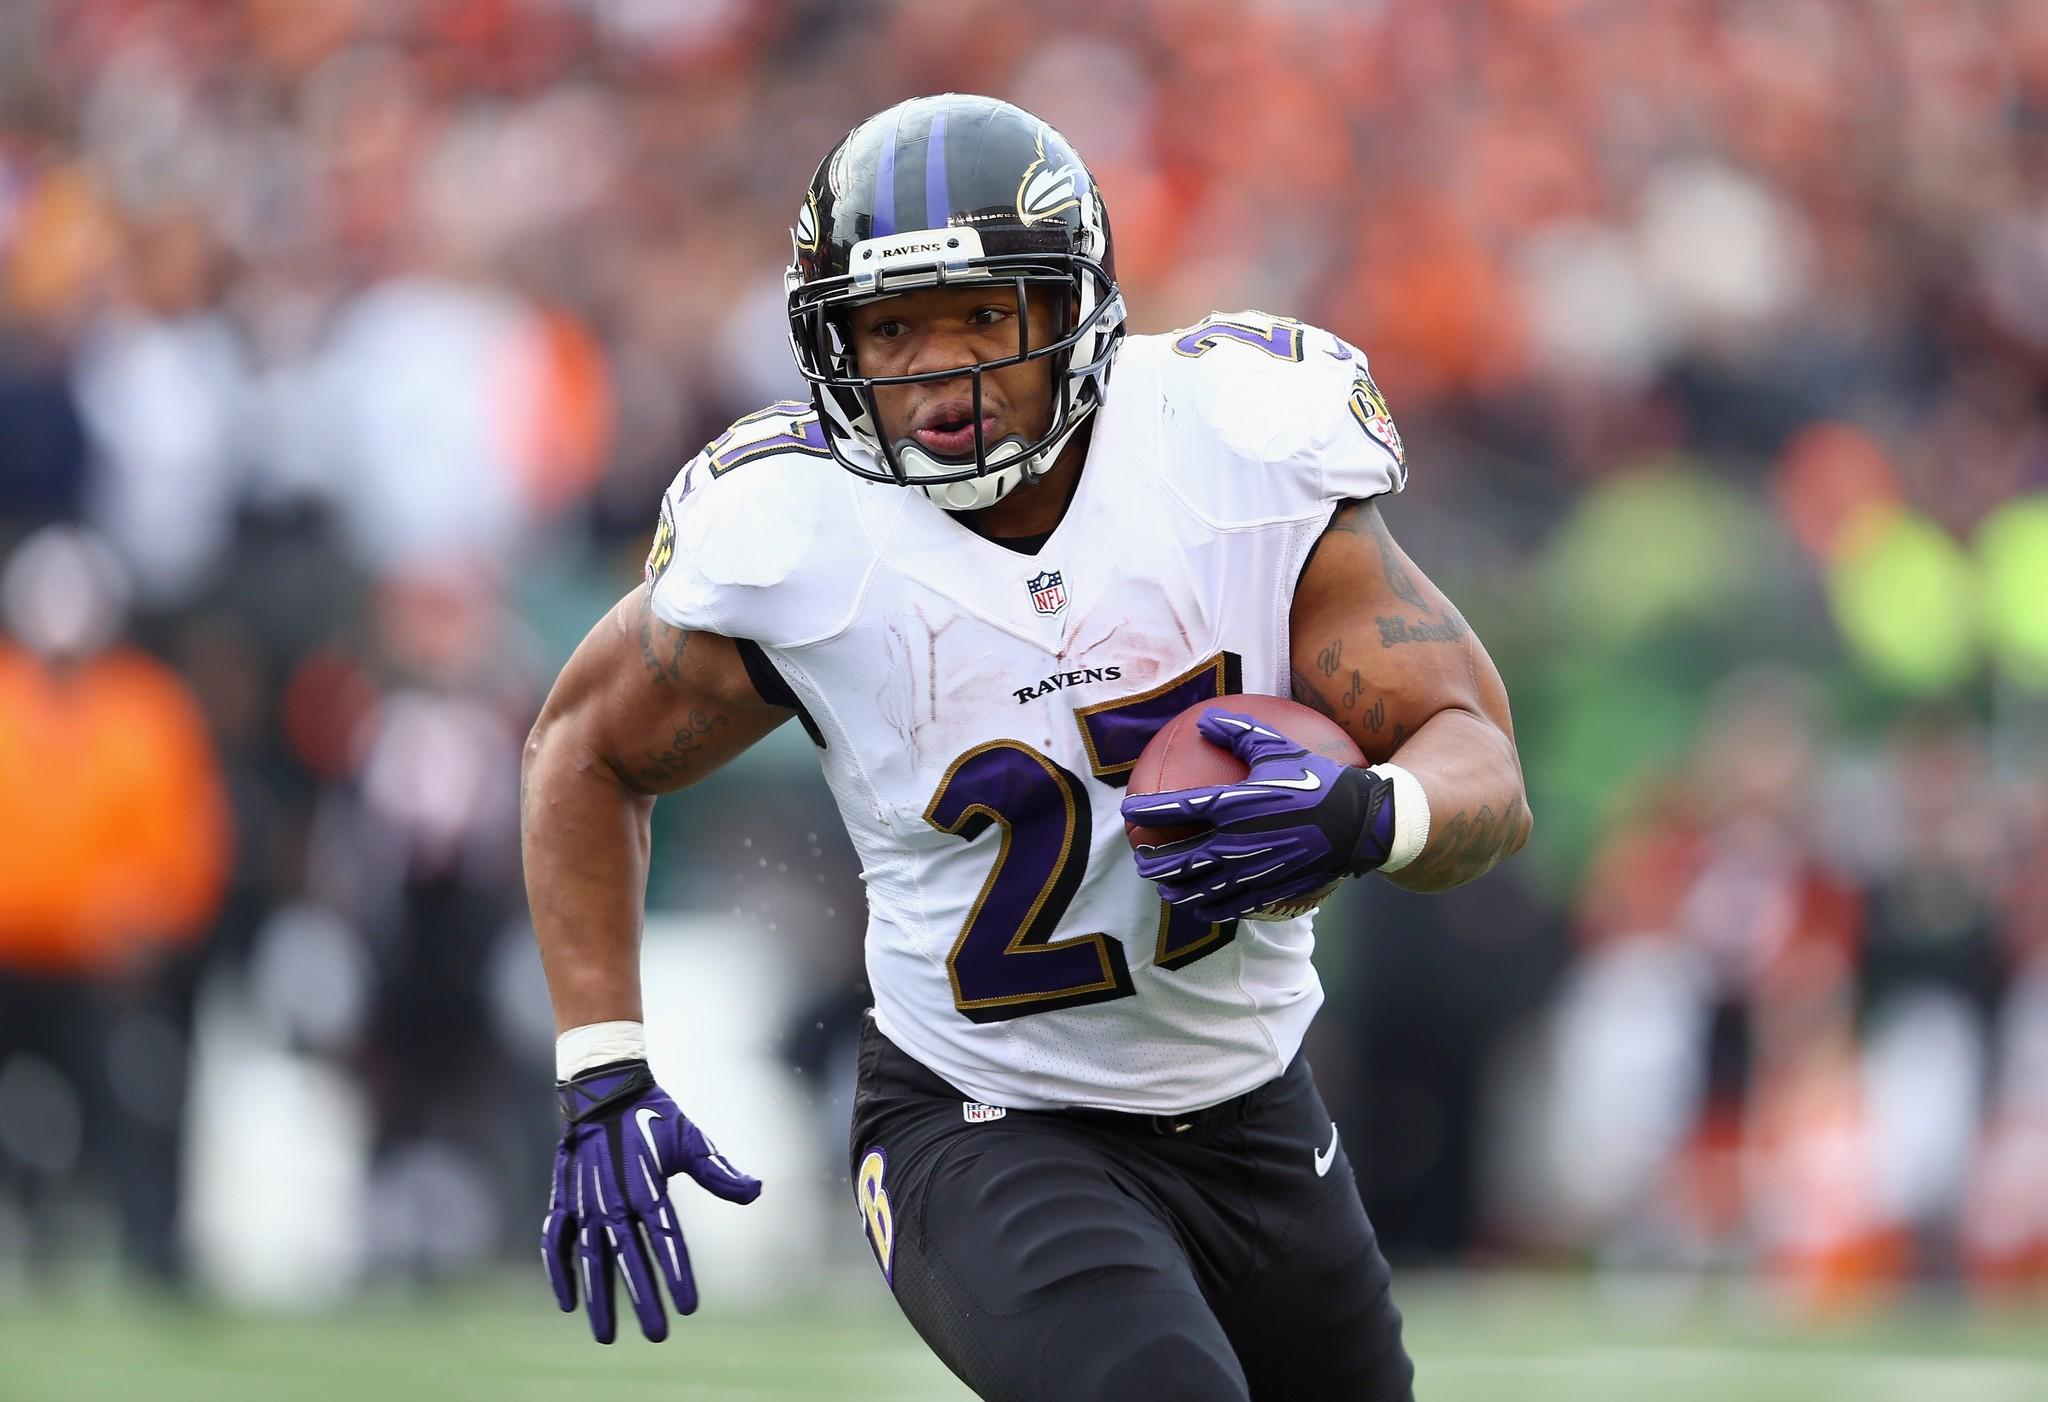 Ravens running back Ray Rice carries the ball against the Cincinnati Bengals in December.